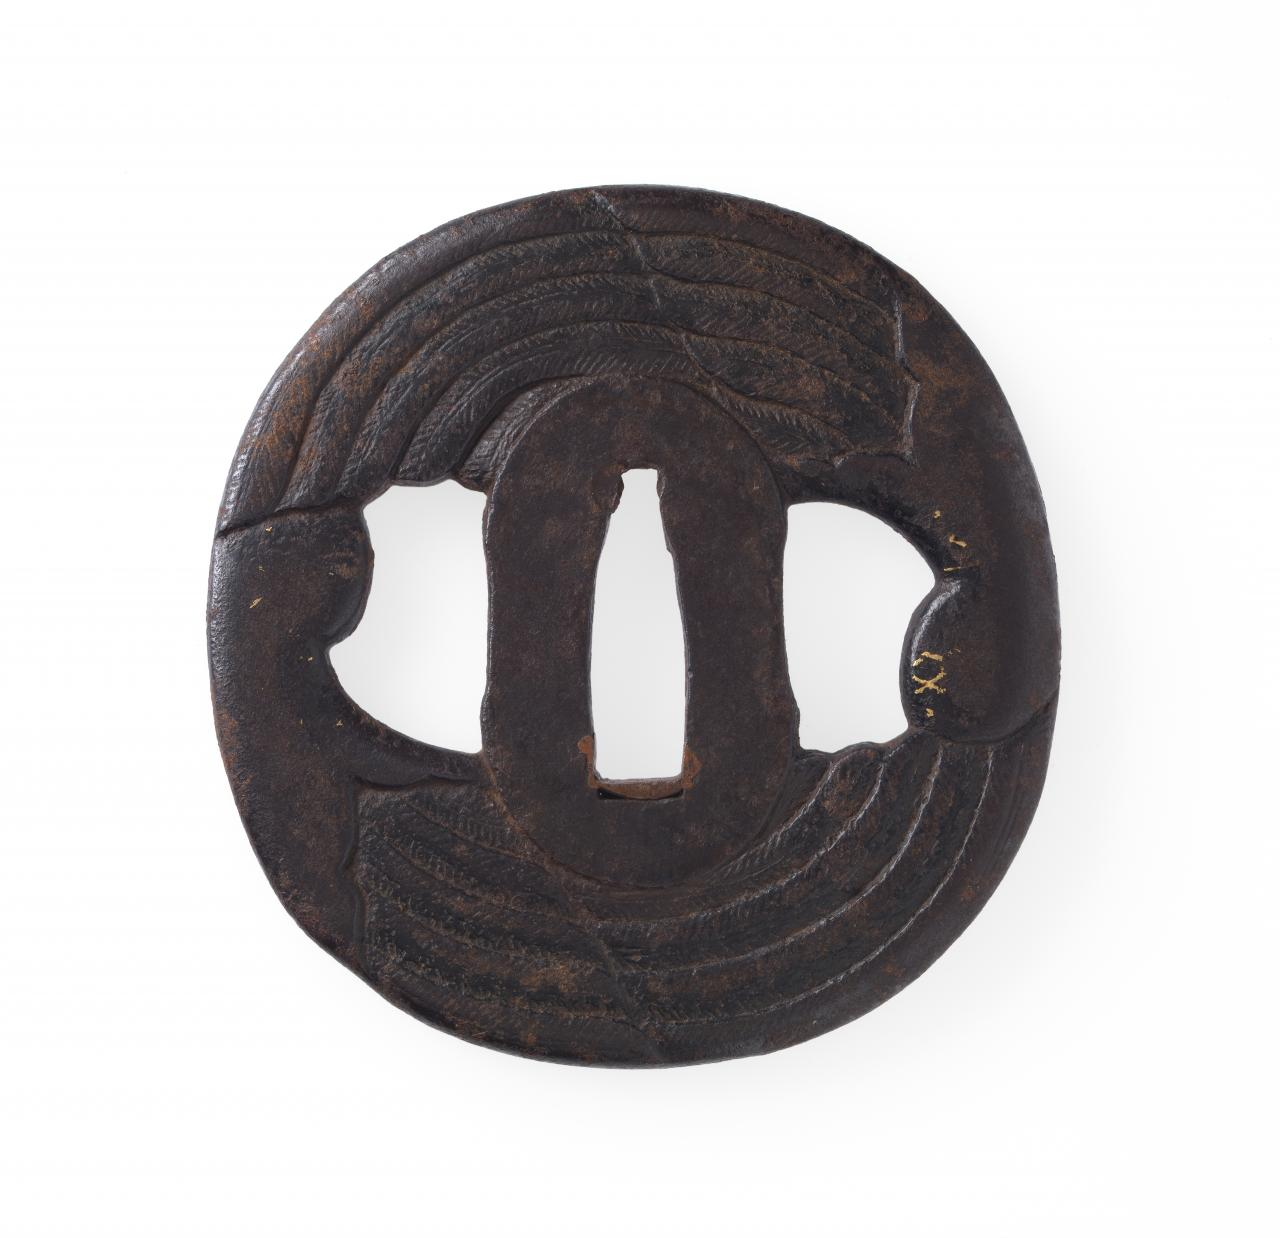 Sword guard with split feathered fan design